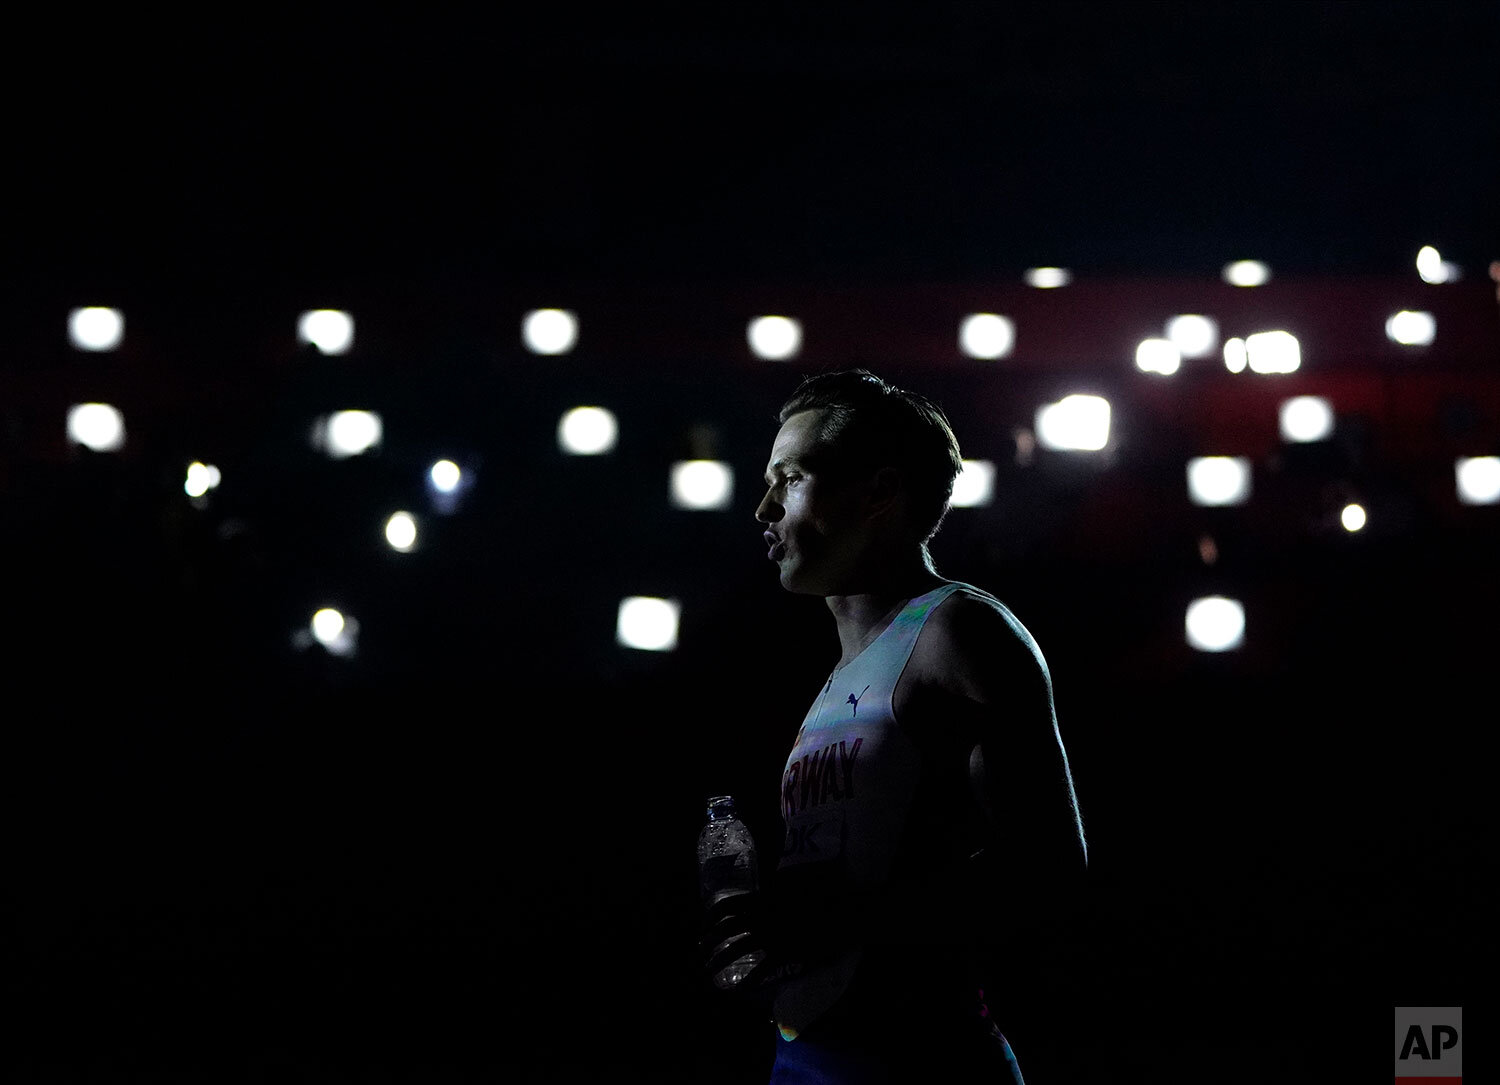 Karsten Warholm, of Norway, stands in front of lights at the start of the men's 400 meter hurdles final at the World Athletics Championships in Doha, Qatar, Monday, Sept. 30, 2019. Warholm won the gold medal in the event. (AP Photo/David J. Phillip)